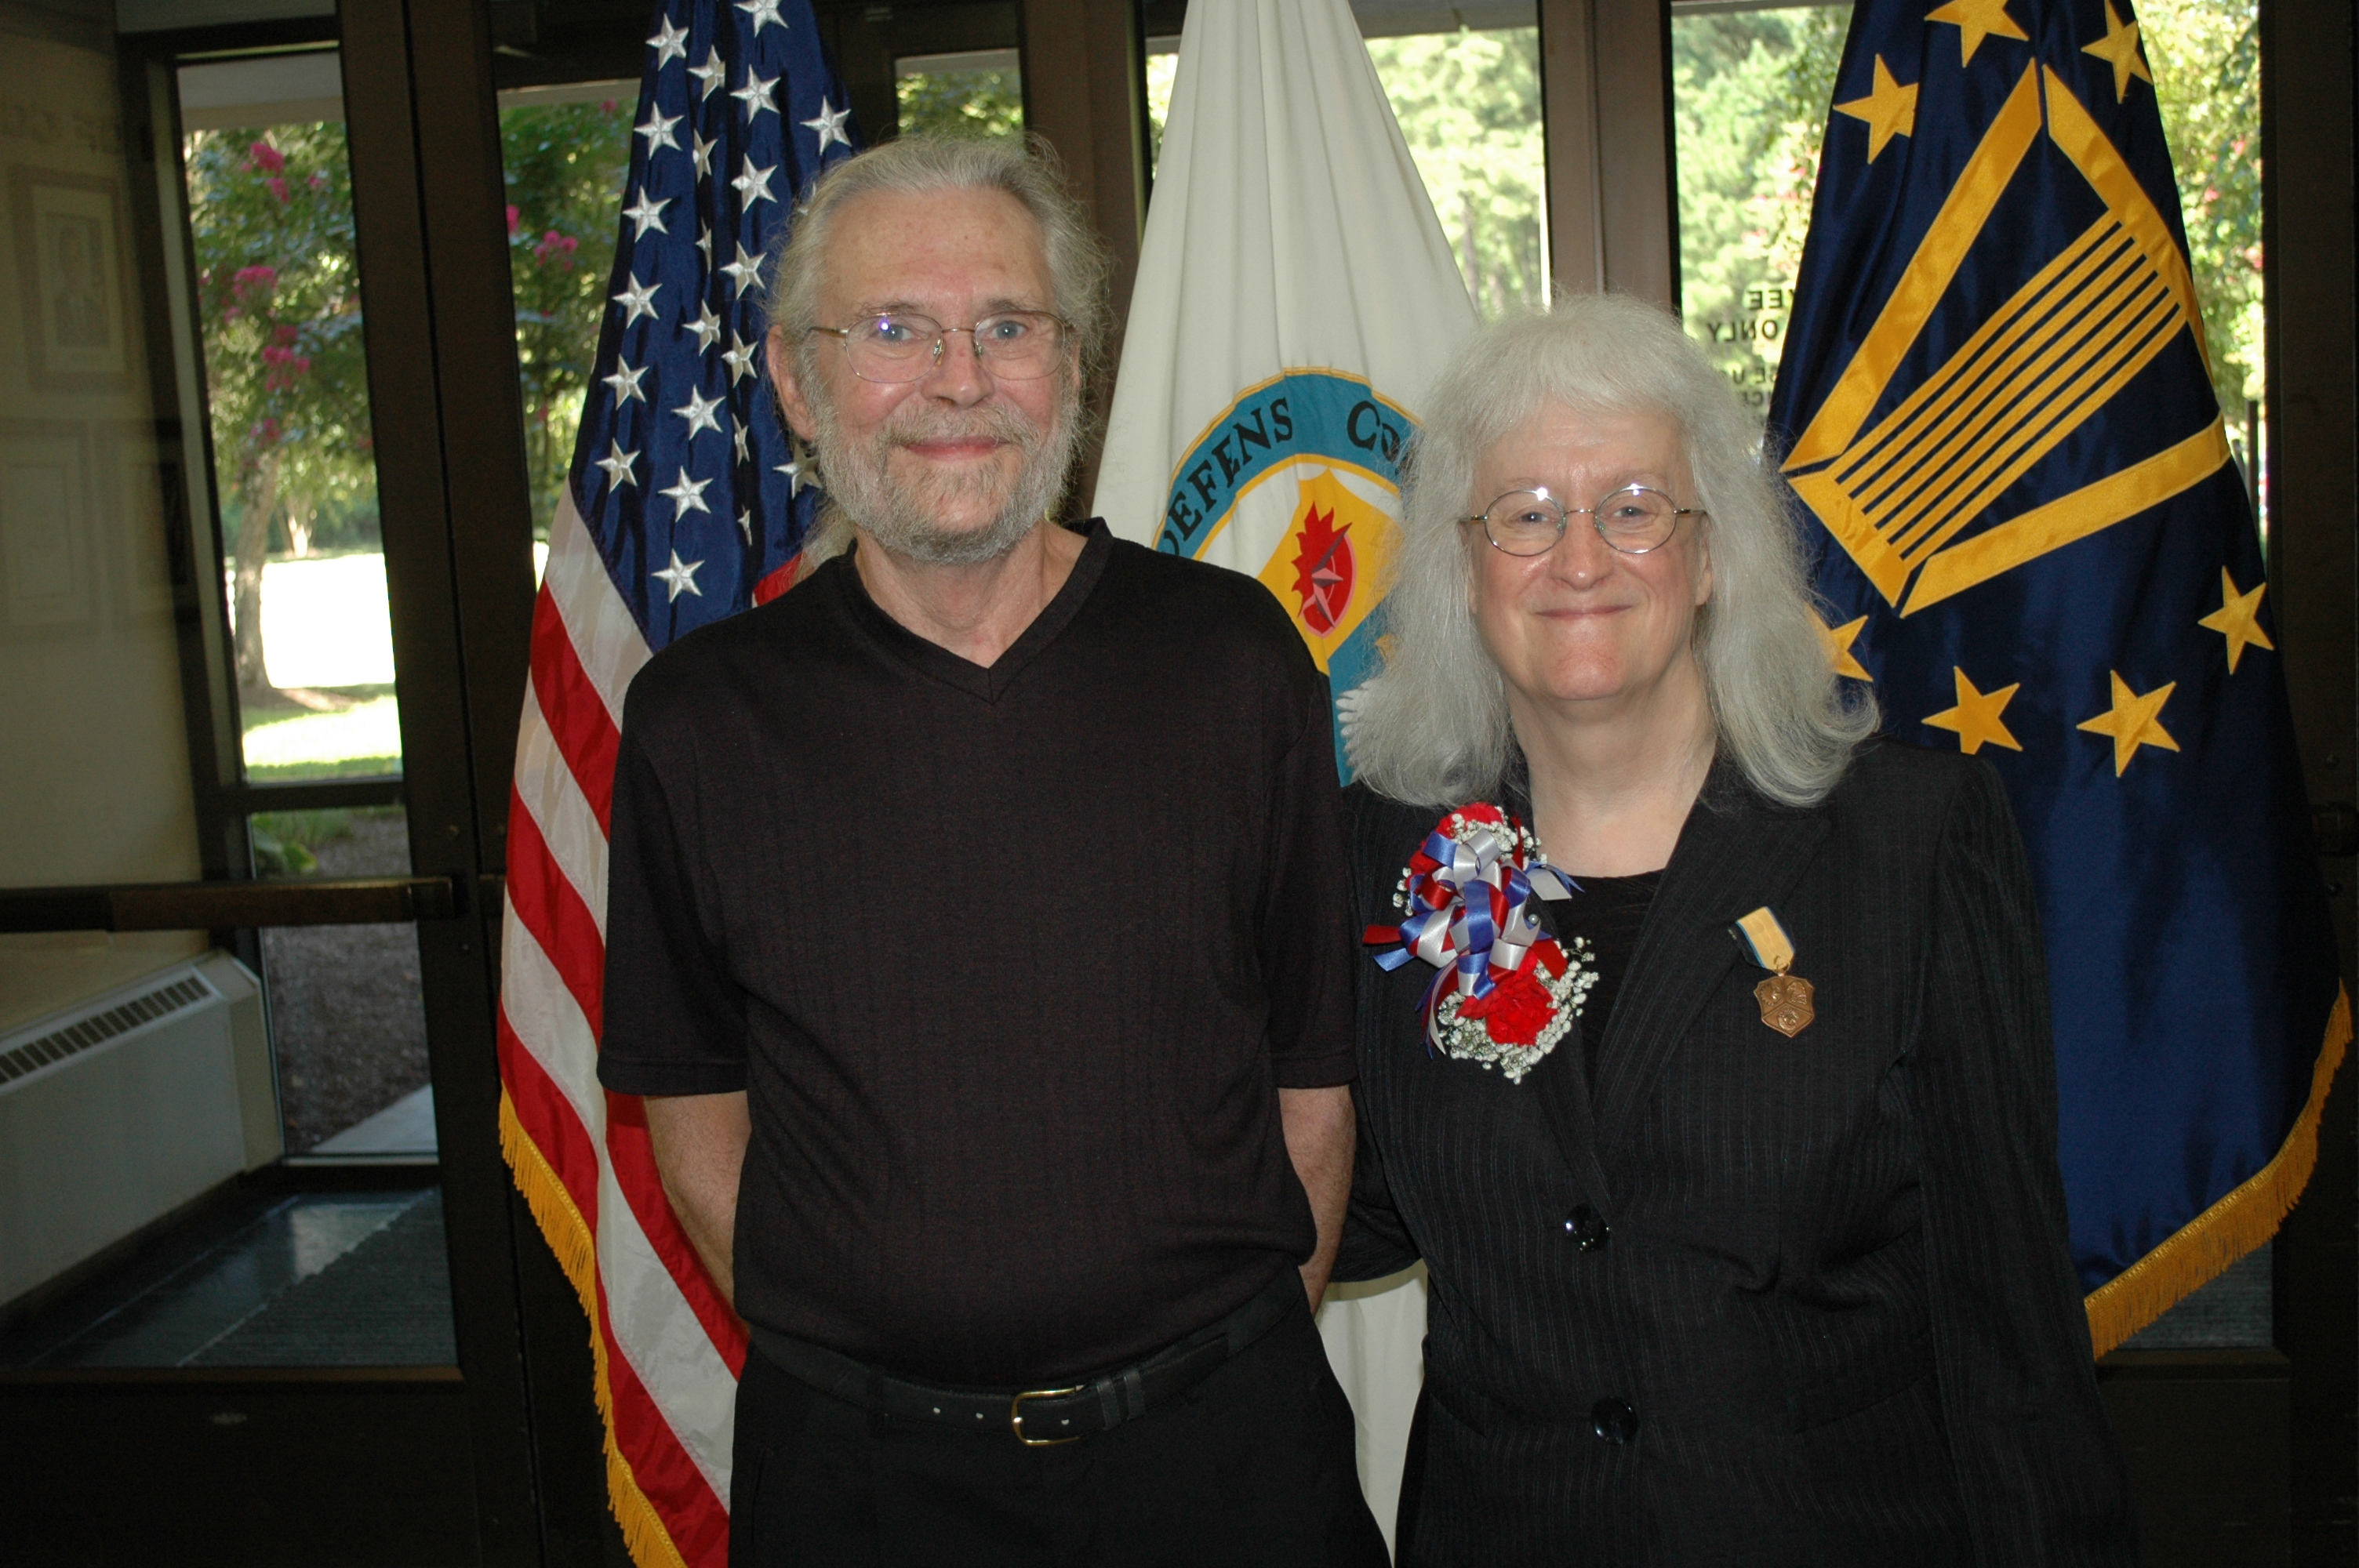 Louis and Kristen Ogden live in Virginia. He takes high doses of opioids to treat his chronic pain. This photo was taken at her retirement ceremony in 2014.